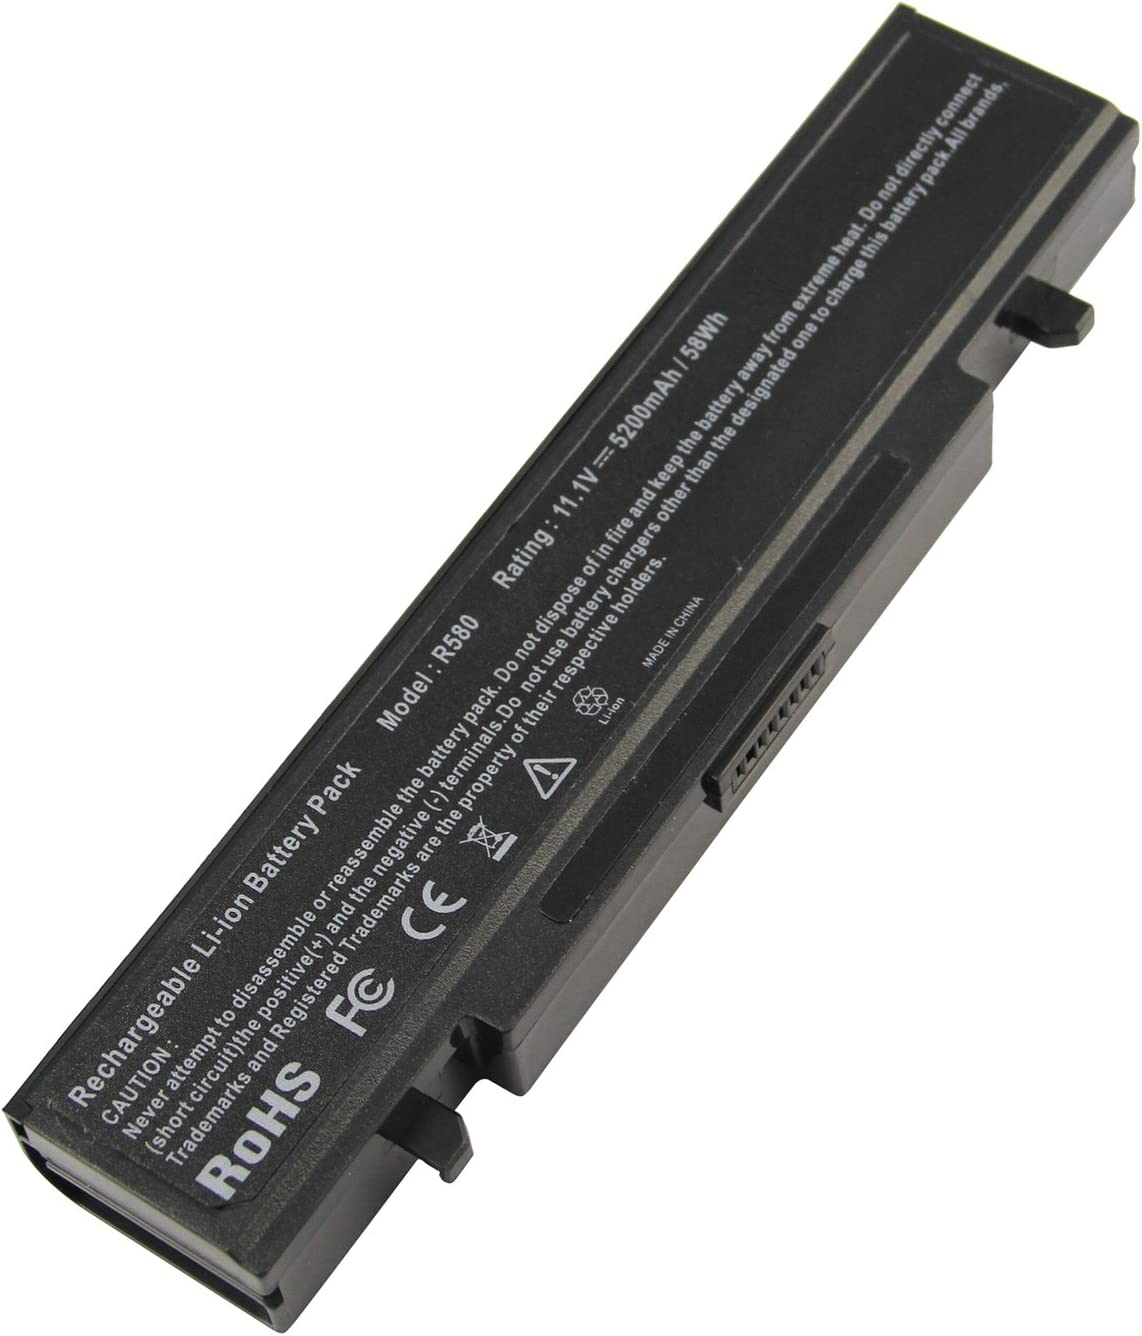 Futurebatt Laptop Battery AA-PB9NC6B for Samsung R420 R430 R468 R470 R480 RV510 RV511 RC512 R519 R520 R530 R540 R580 R718 R730 R780 RV408 RF510 Q320 Q430